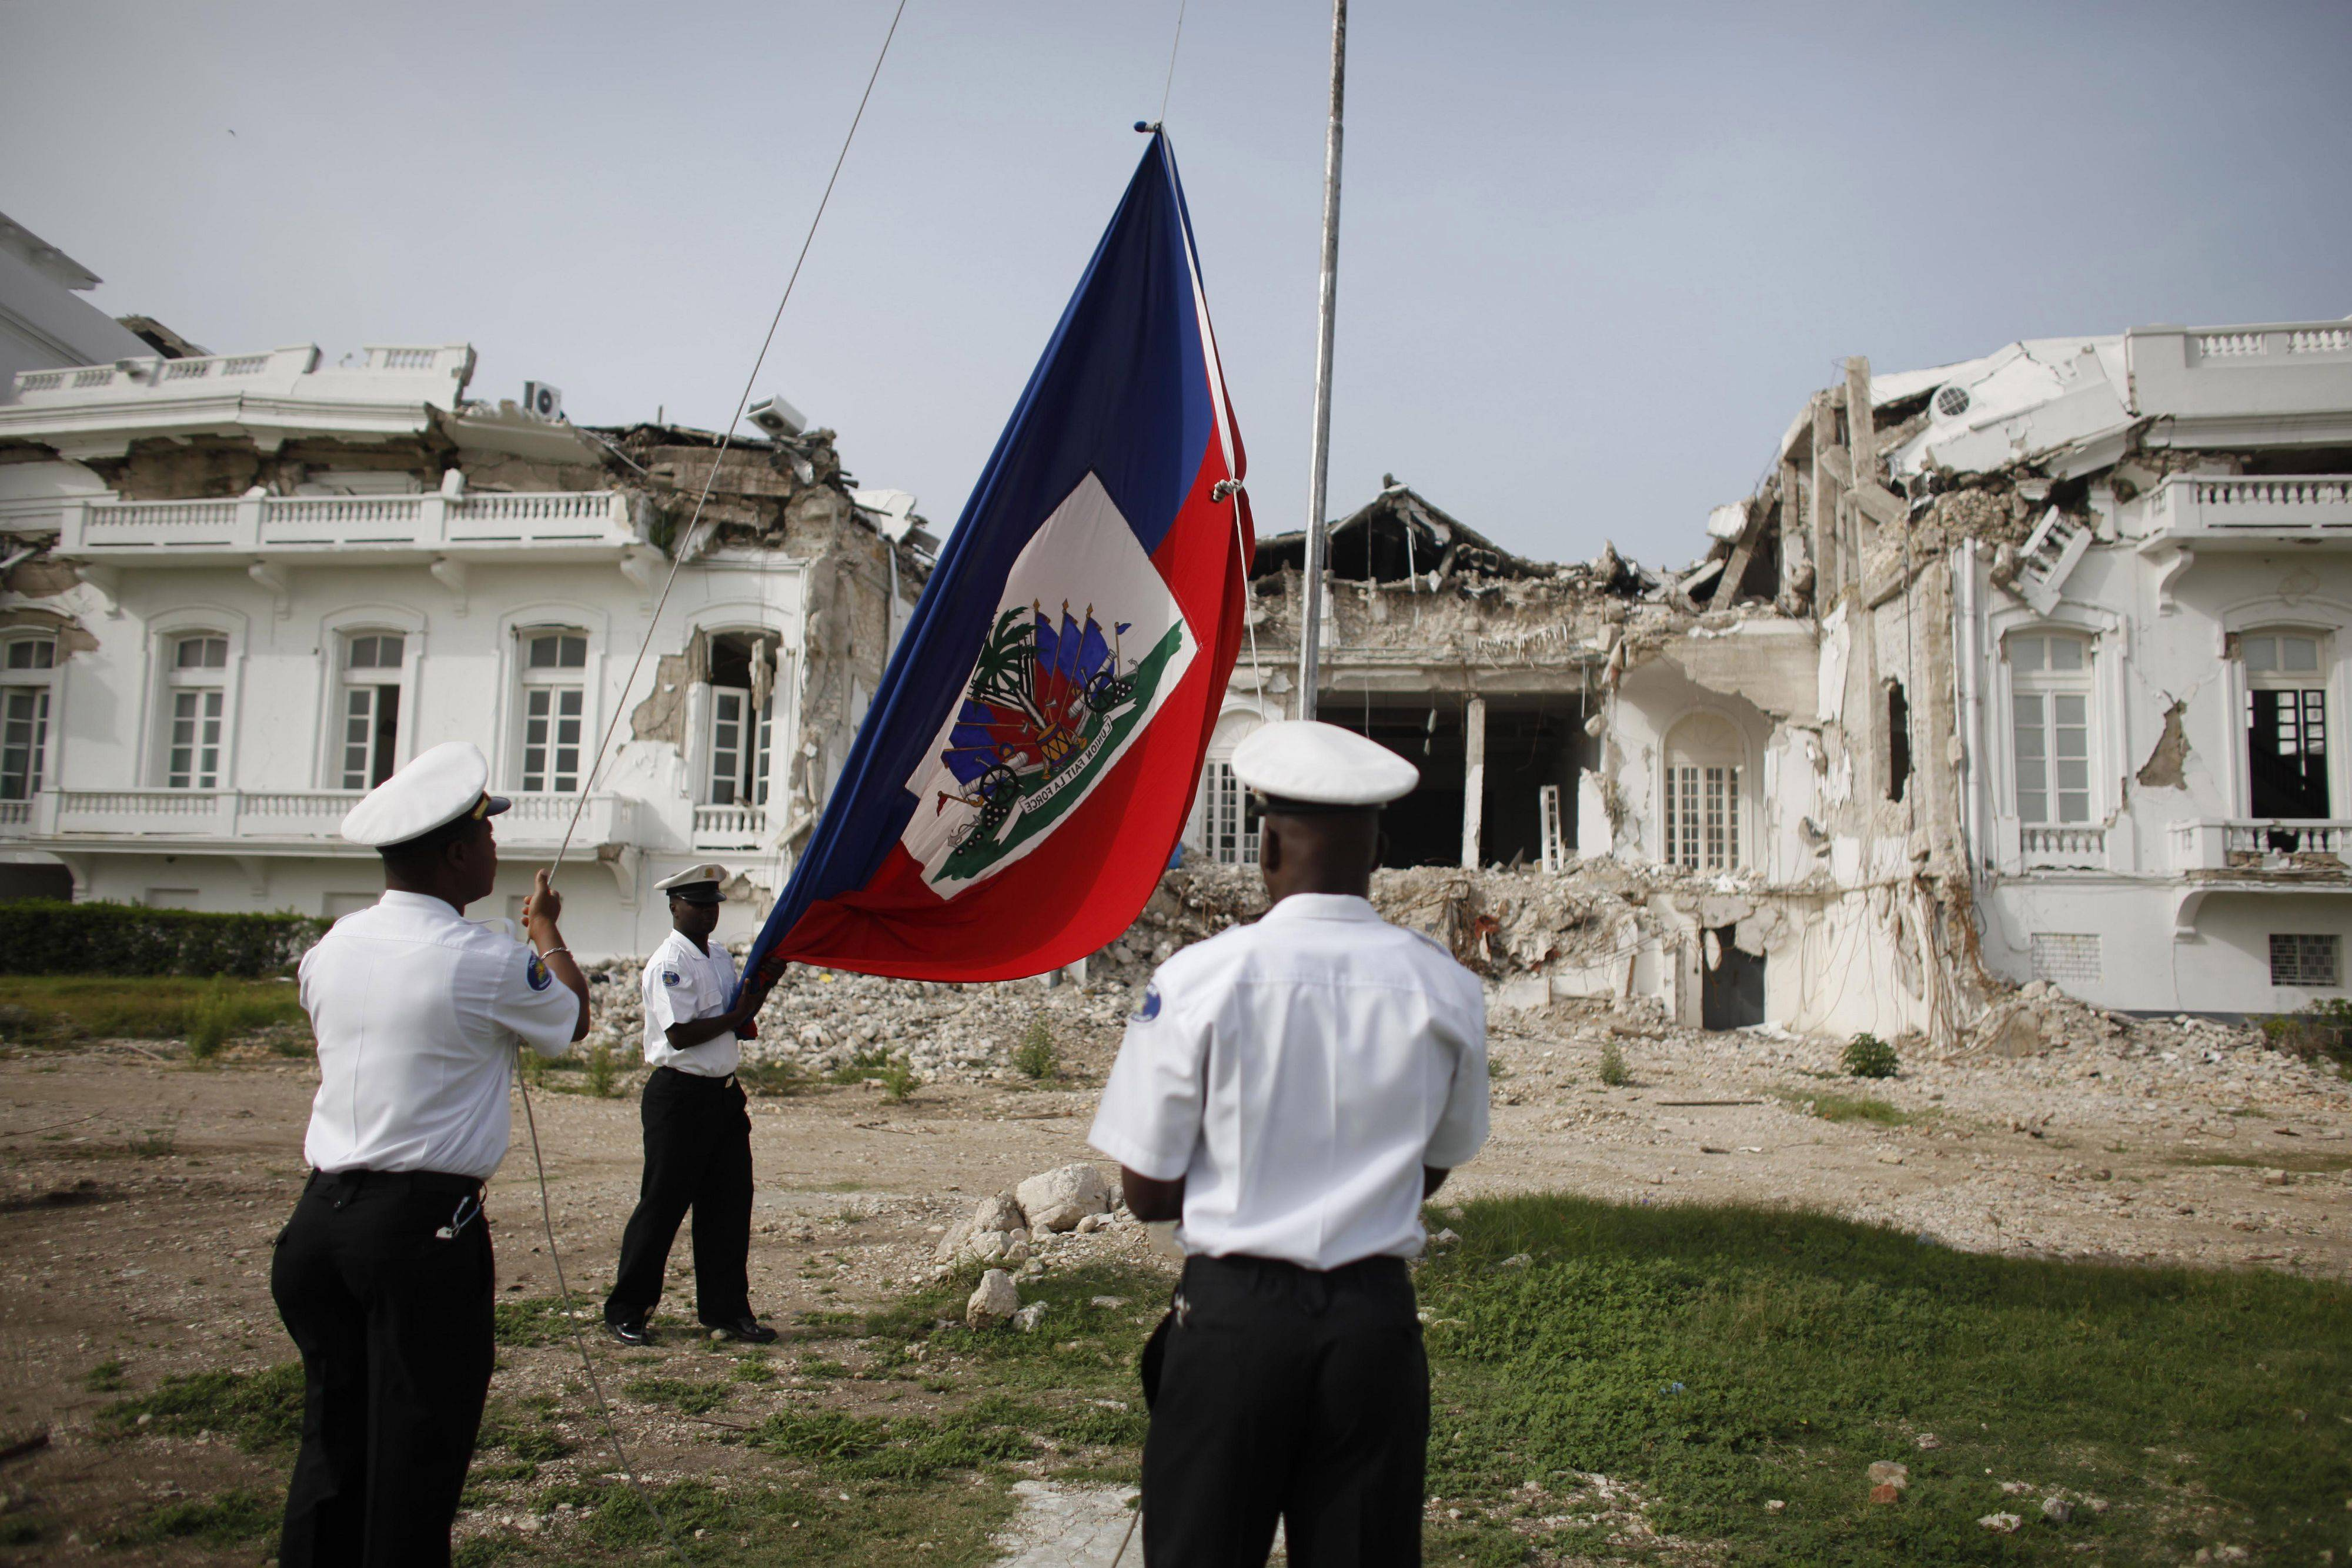 In this photo taken July 4, 2010, police raise the Haitian flag in front of the Jan. 12 earthquake damaged National Palace in Port-au-Prince, Haiti. Six months after the devastating earthquake several plans exist on paper to rebuild the main government buildings but no official decision has been made and the future of fifteen of the country's 17 ministry buildings that collapsed in the quake remains unclear.